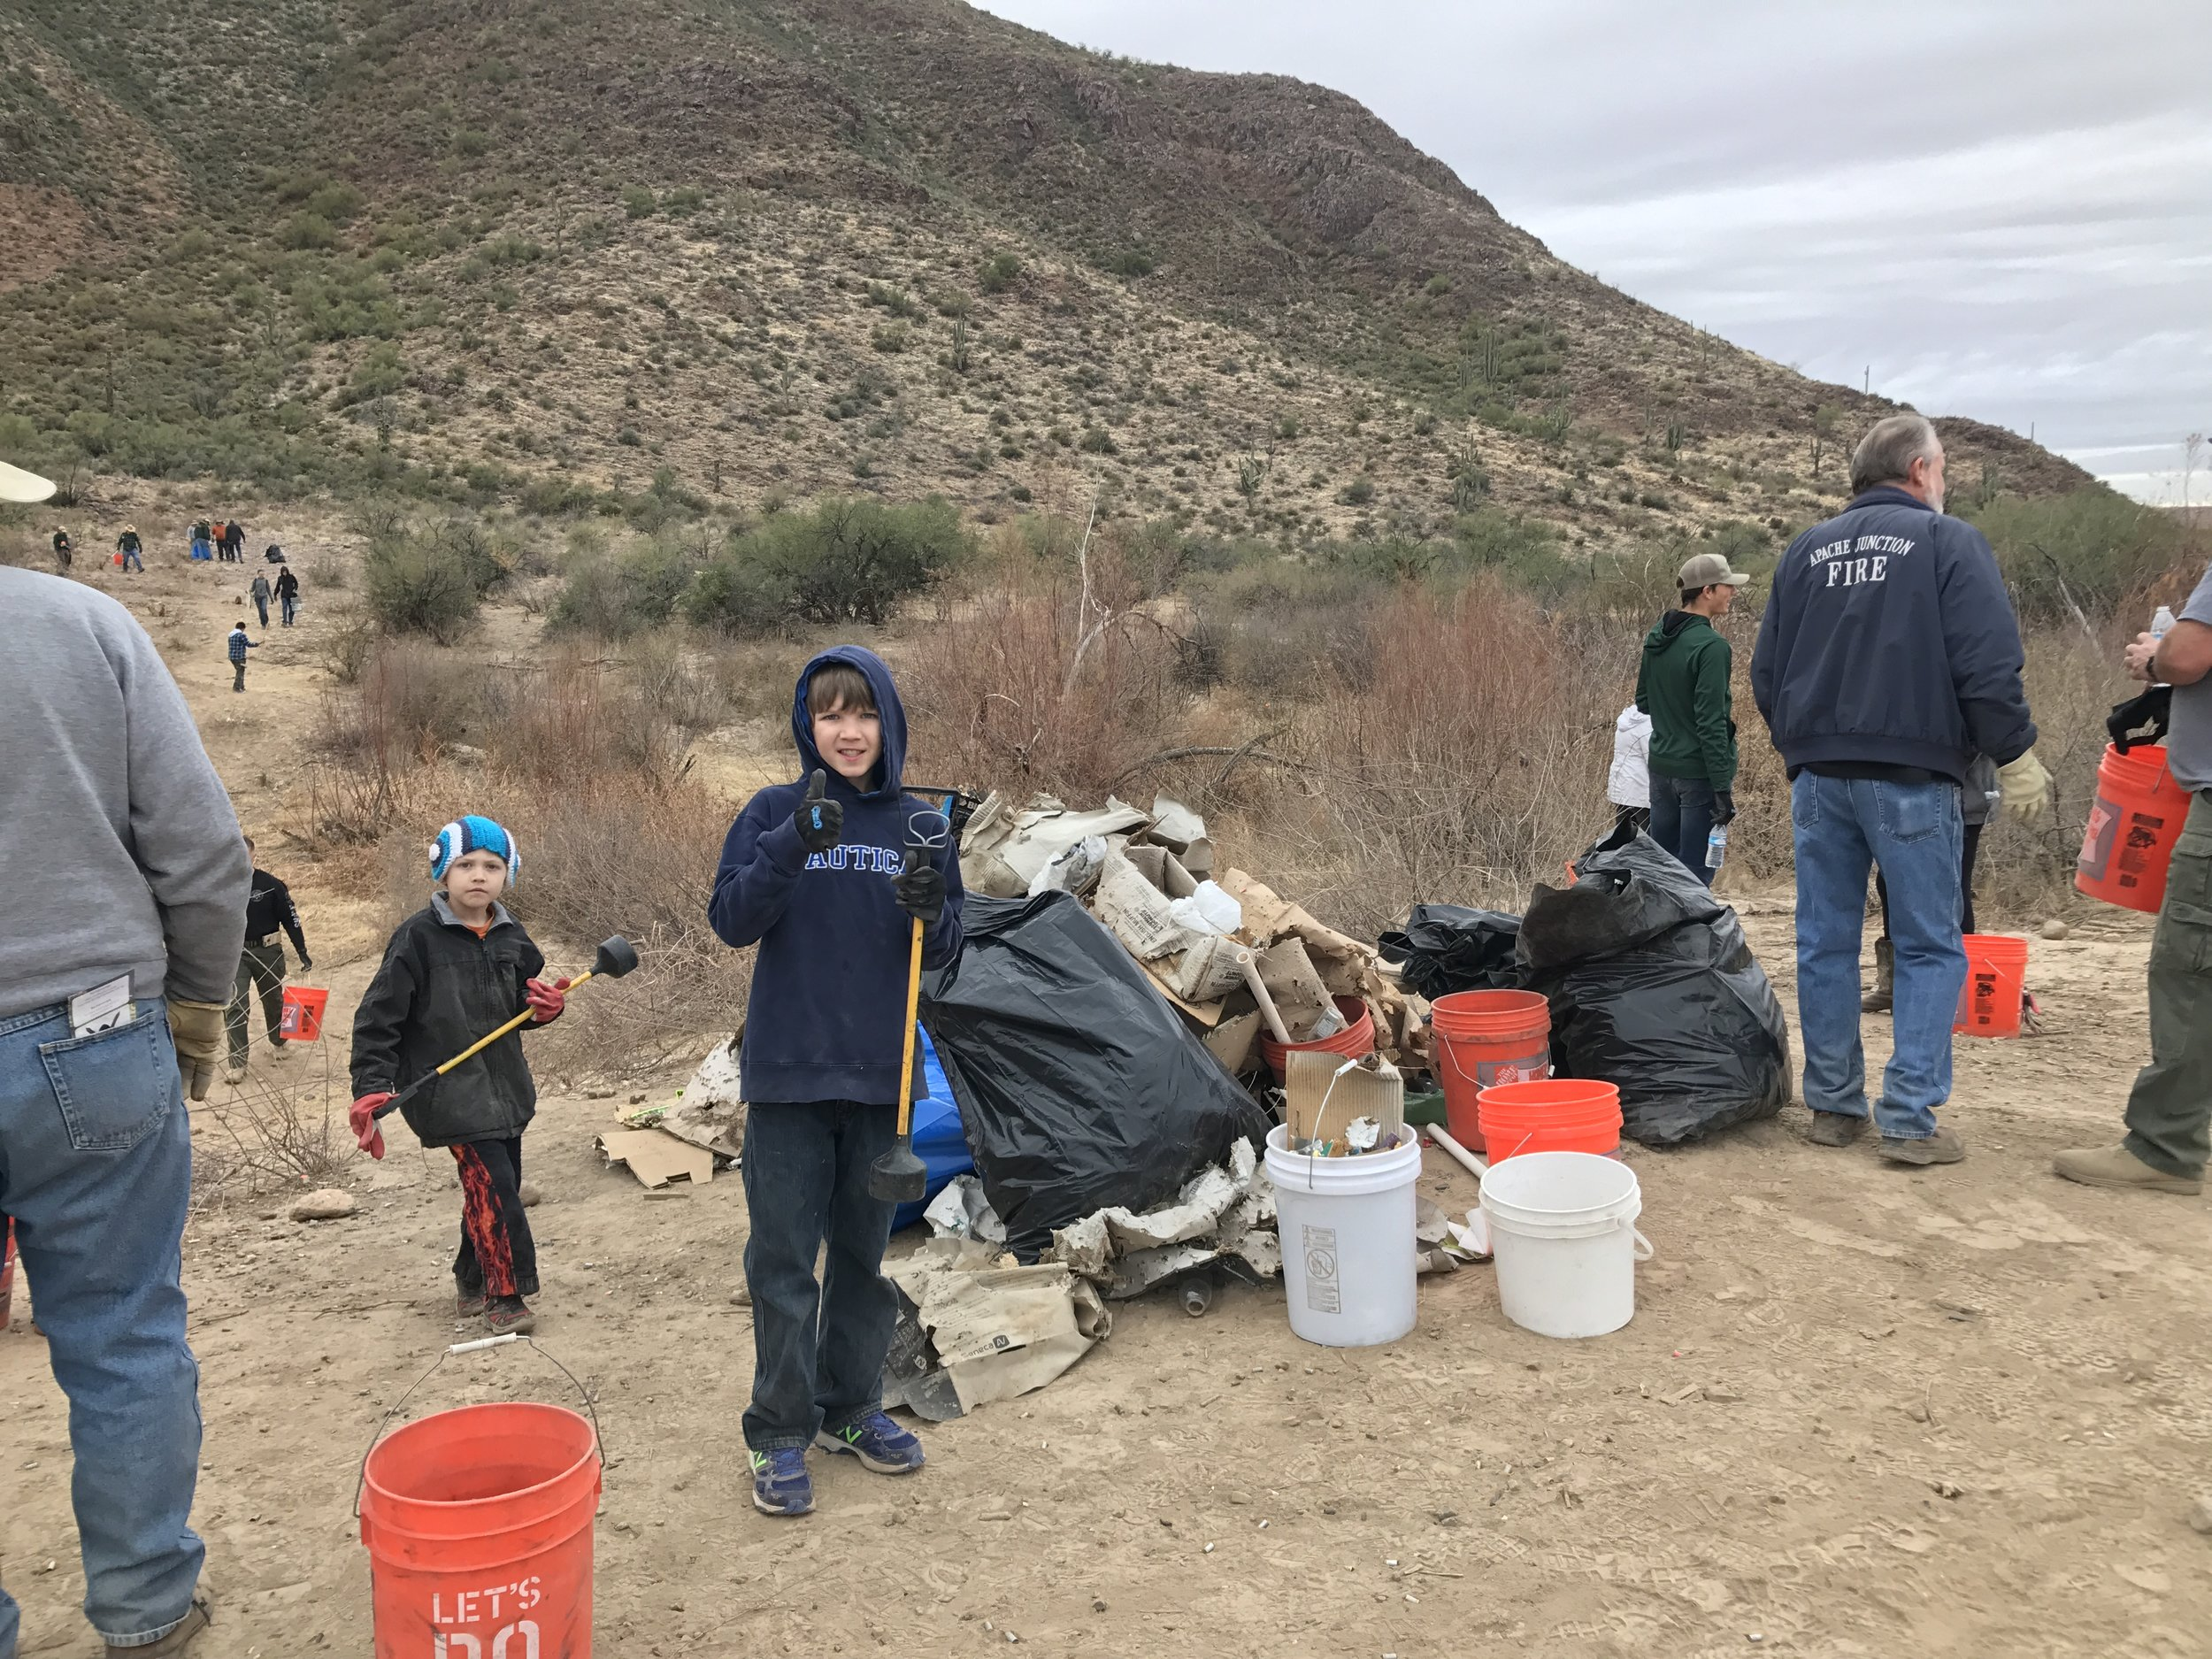 01/20/18 - 9th Annual Footprints Matter To Us Environmental Stewardship Event with volunteers north of US-60 from Gold Canyon to Superior. Sites on both AZ State Trust land & the Tonto National Forest.Click HERE to view the entire restoration.